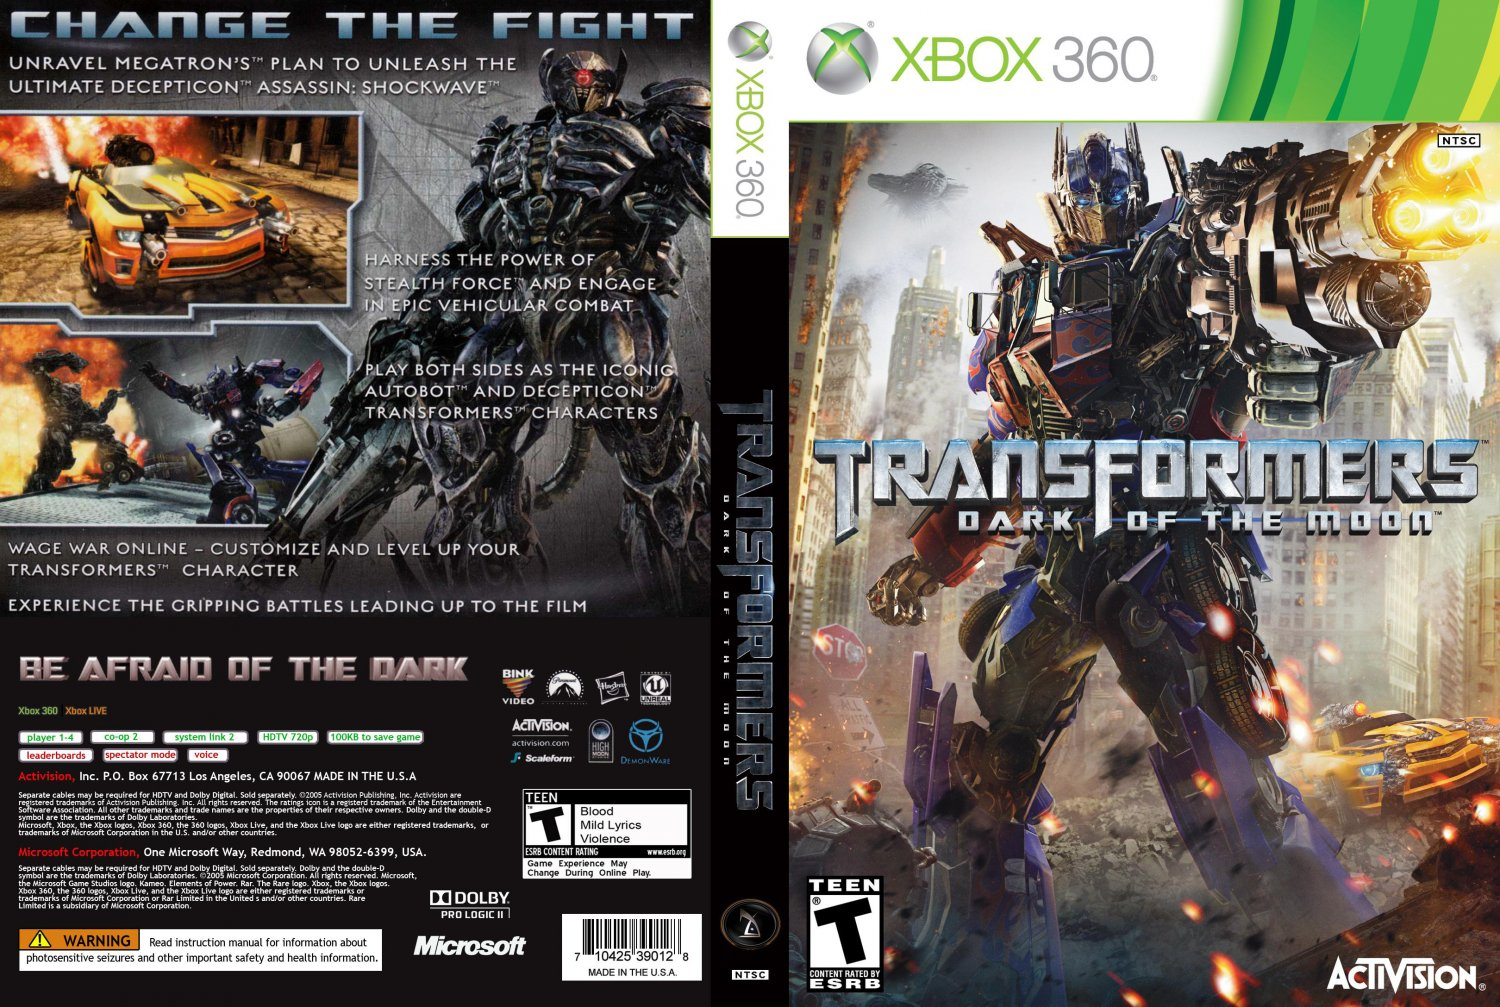 Of The Moon - XBOX 360 Game Covers - Transformers Dark Of The Moon DVD ... Nba 2k14 Custom Covers Xbox